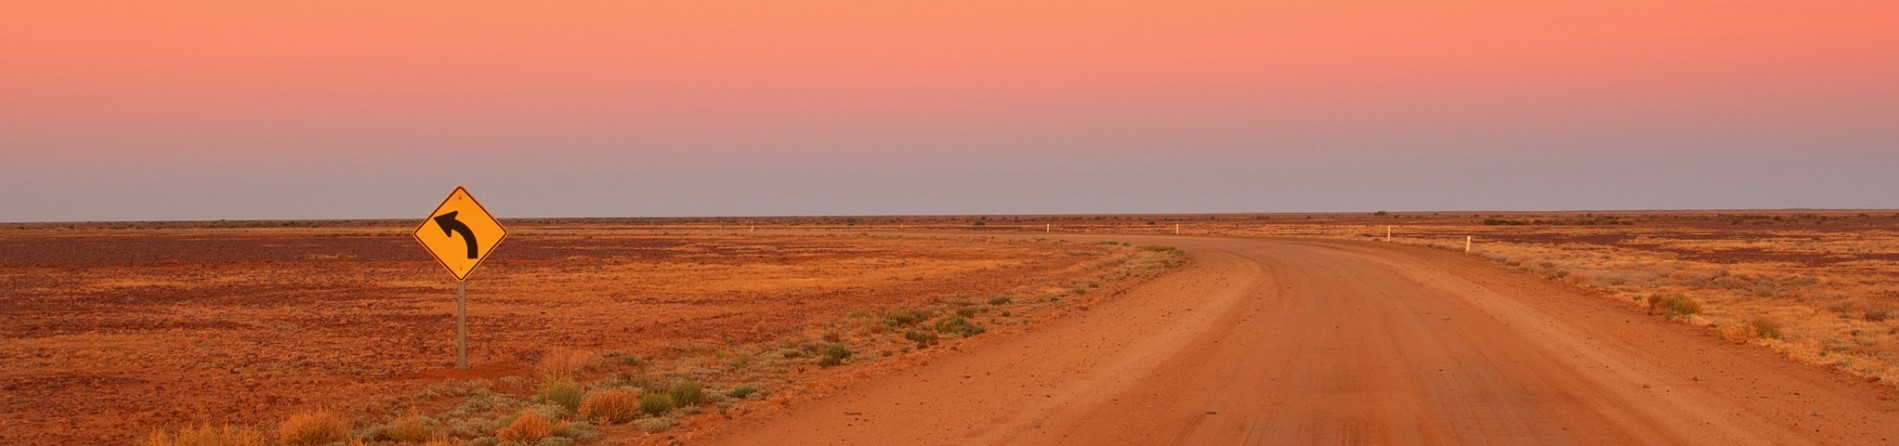 How Do Animals Survive in the Outback?